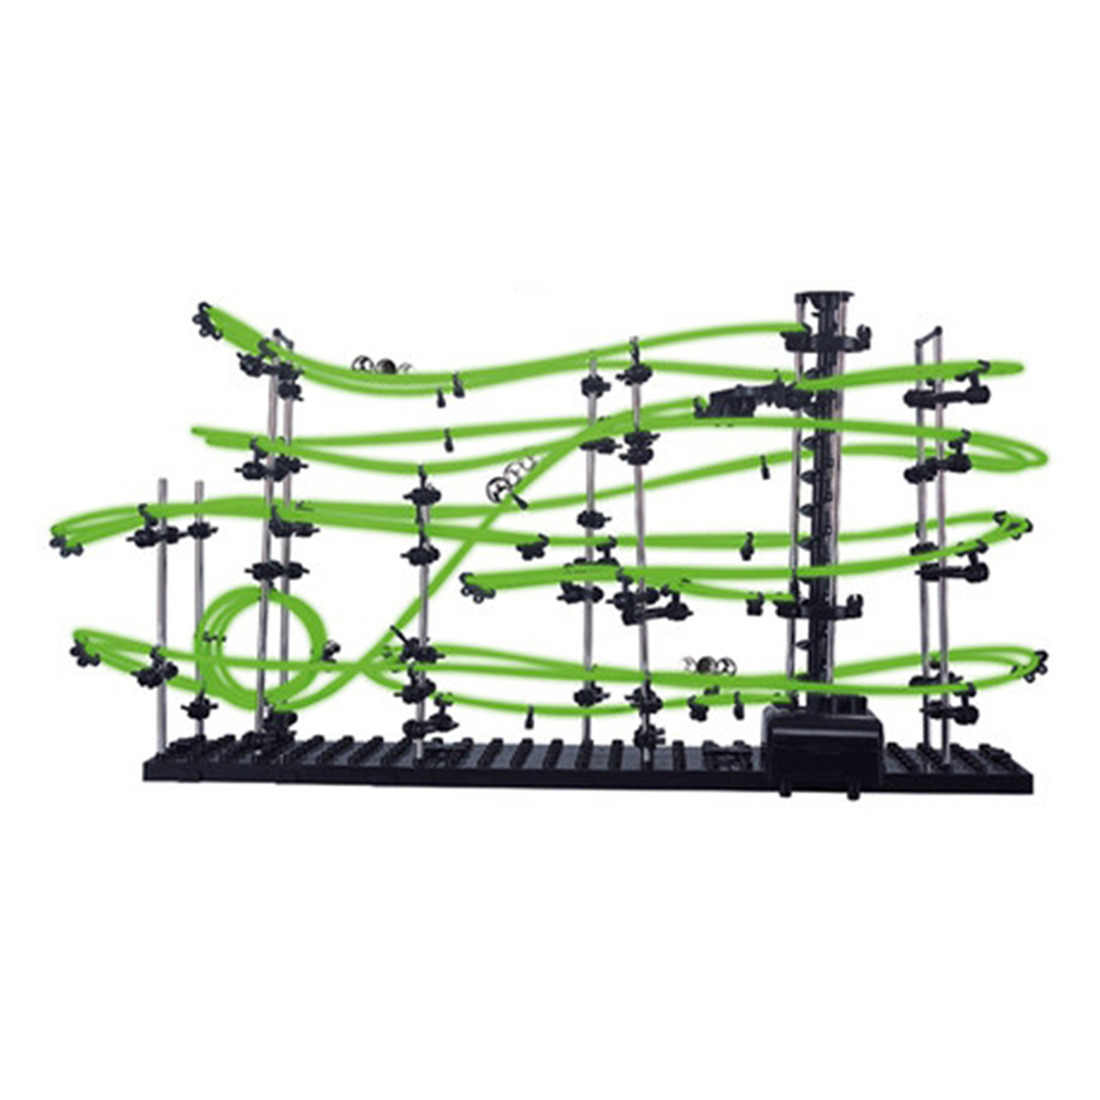 DIY Educational Toys Space Rail Level 3 Glow In The Dark Marble Roller Coaster With Steel Balls 16000mm Model Building Kits Gift